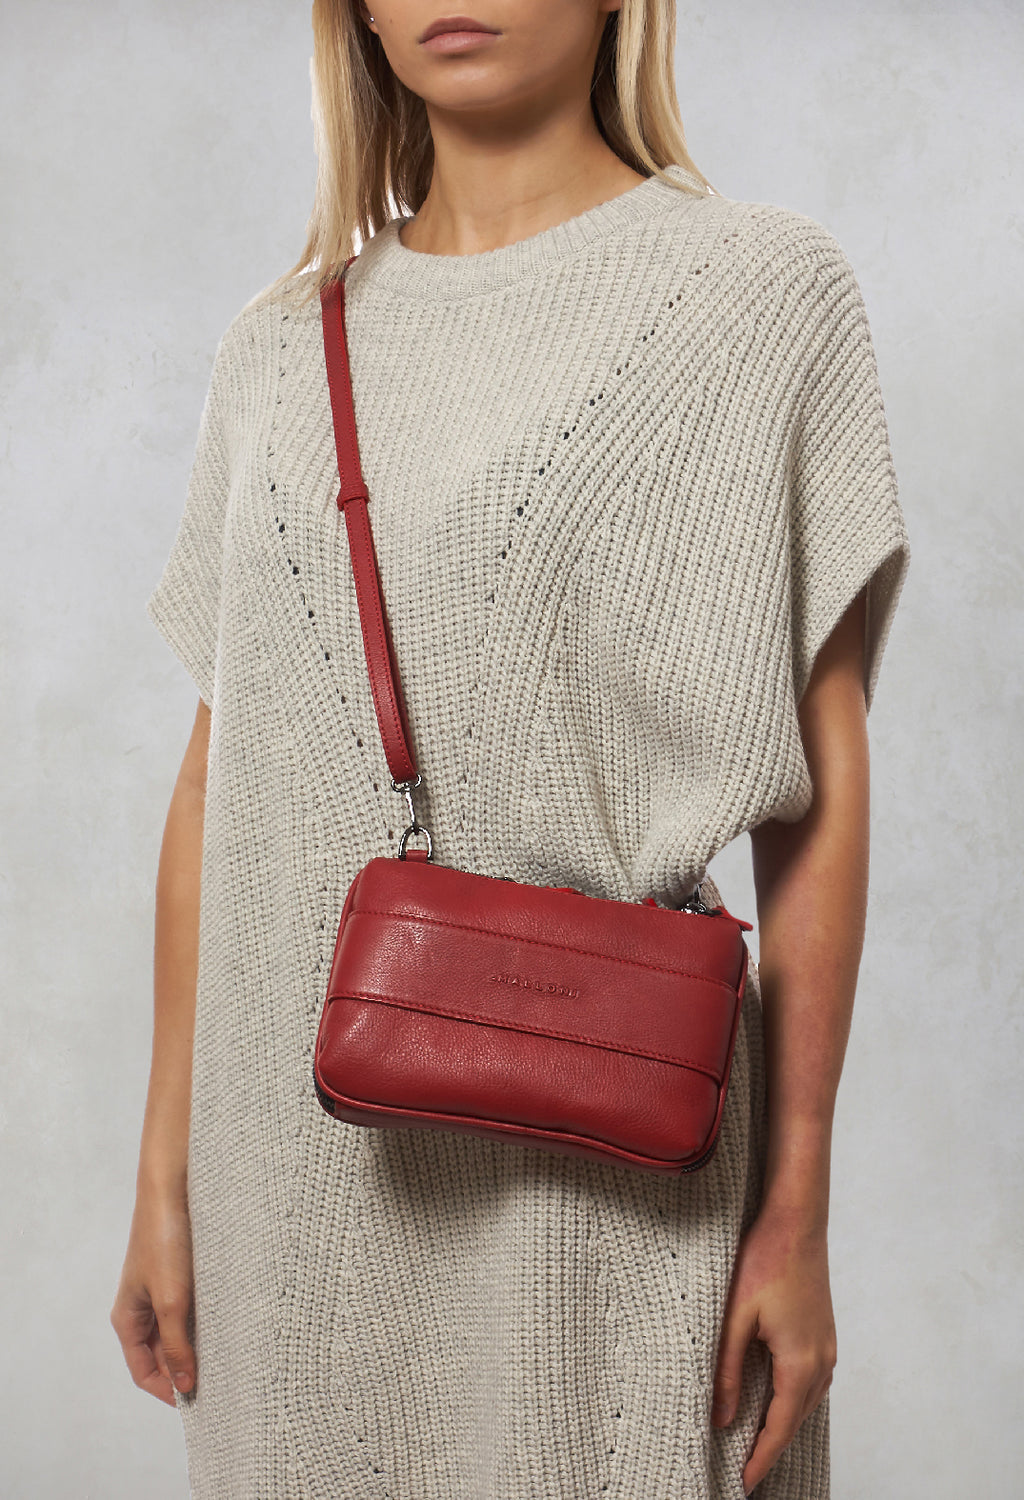 Leather Clutch Bag in Cazalea Nude / Red / Tobacco